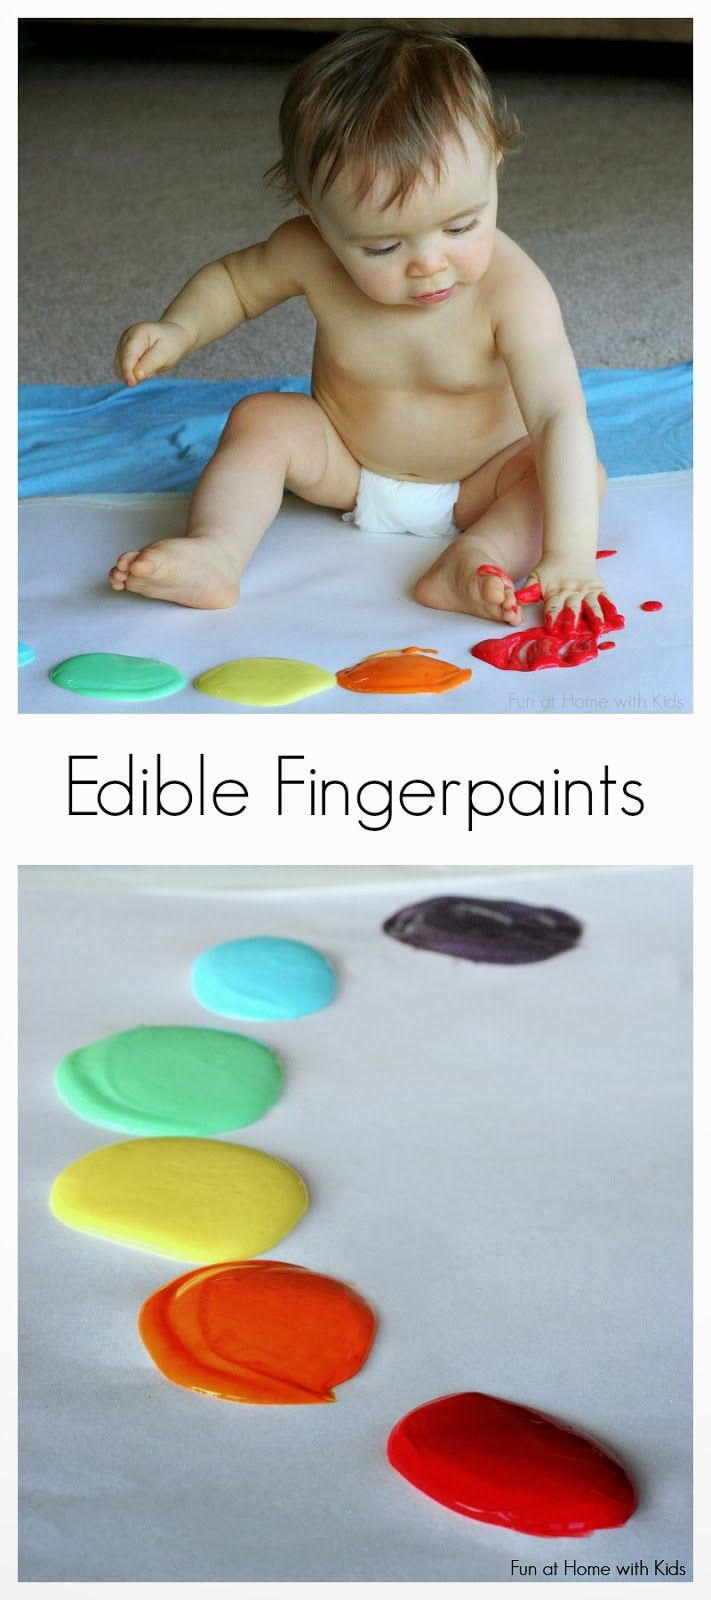 beats solo hd discount Scented Edible NoCook Fingerpaint Recipe for Babies and Toddlers